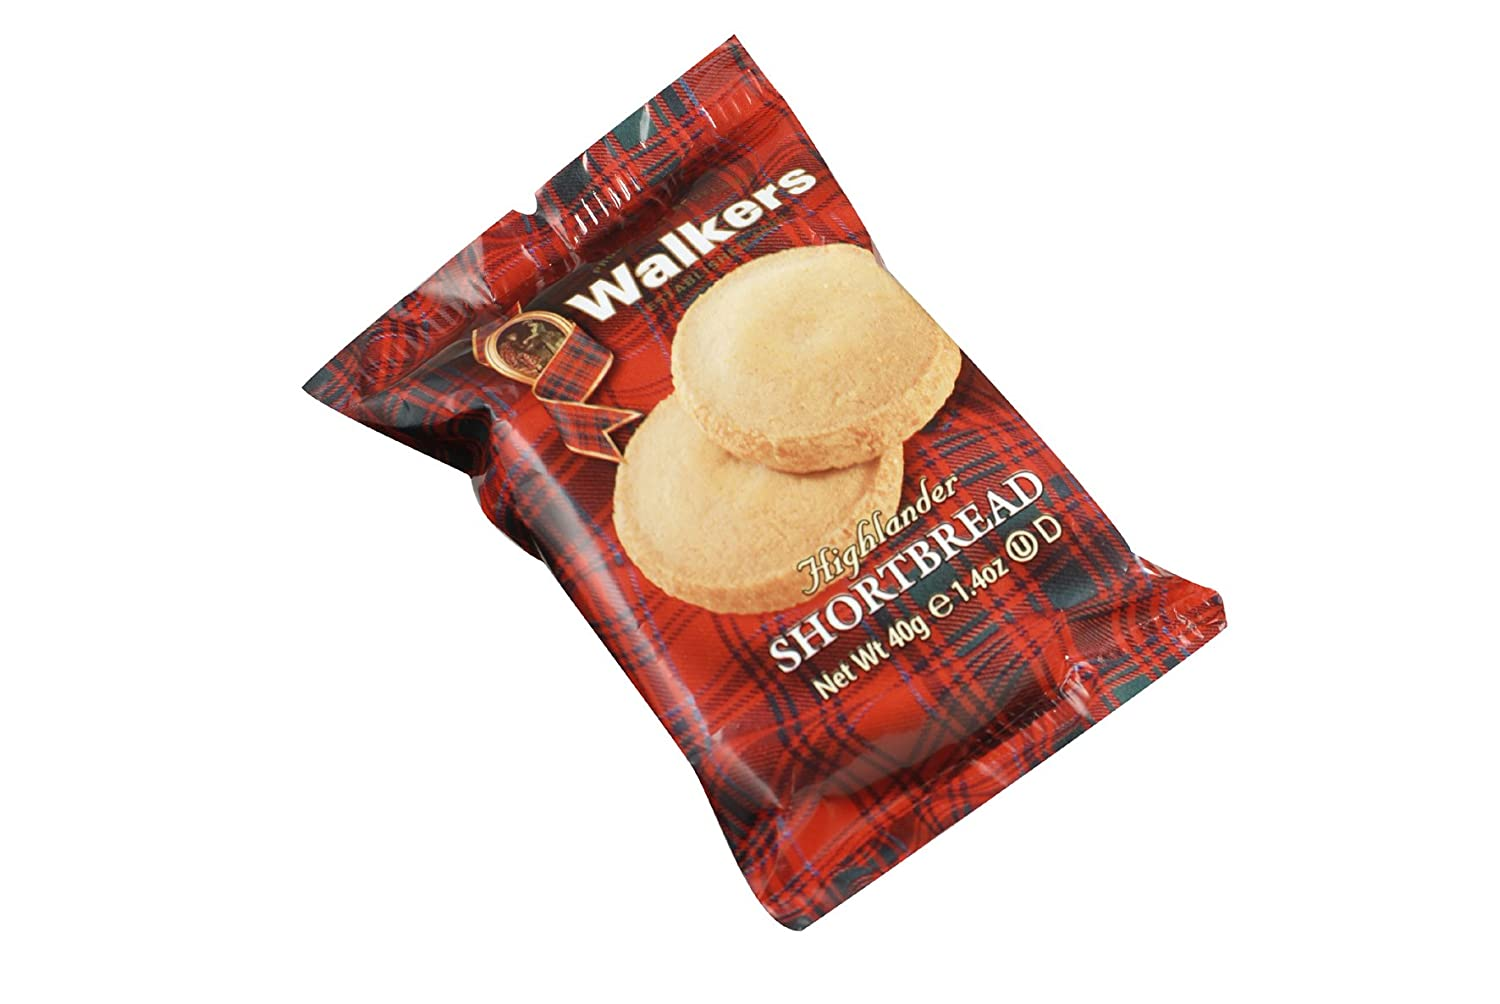 Walkers W176 Shortbread Highlander Cookies 12 National products Pa Pack 1.4oz 2 At the price of surprise